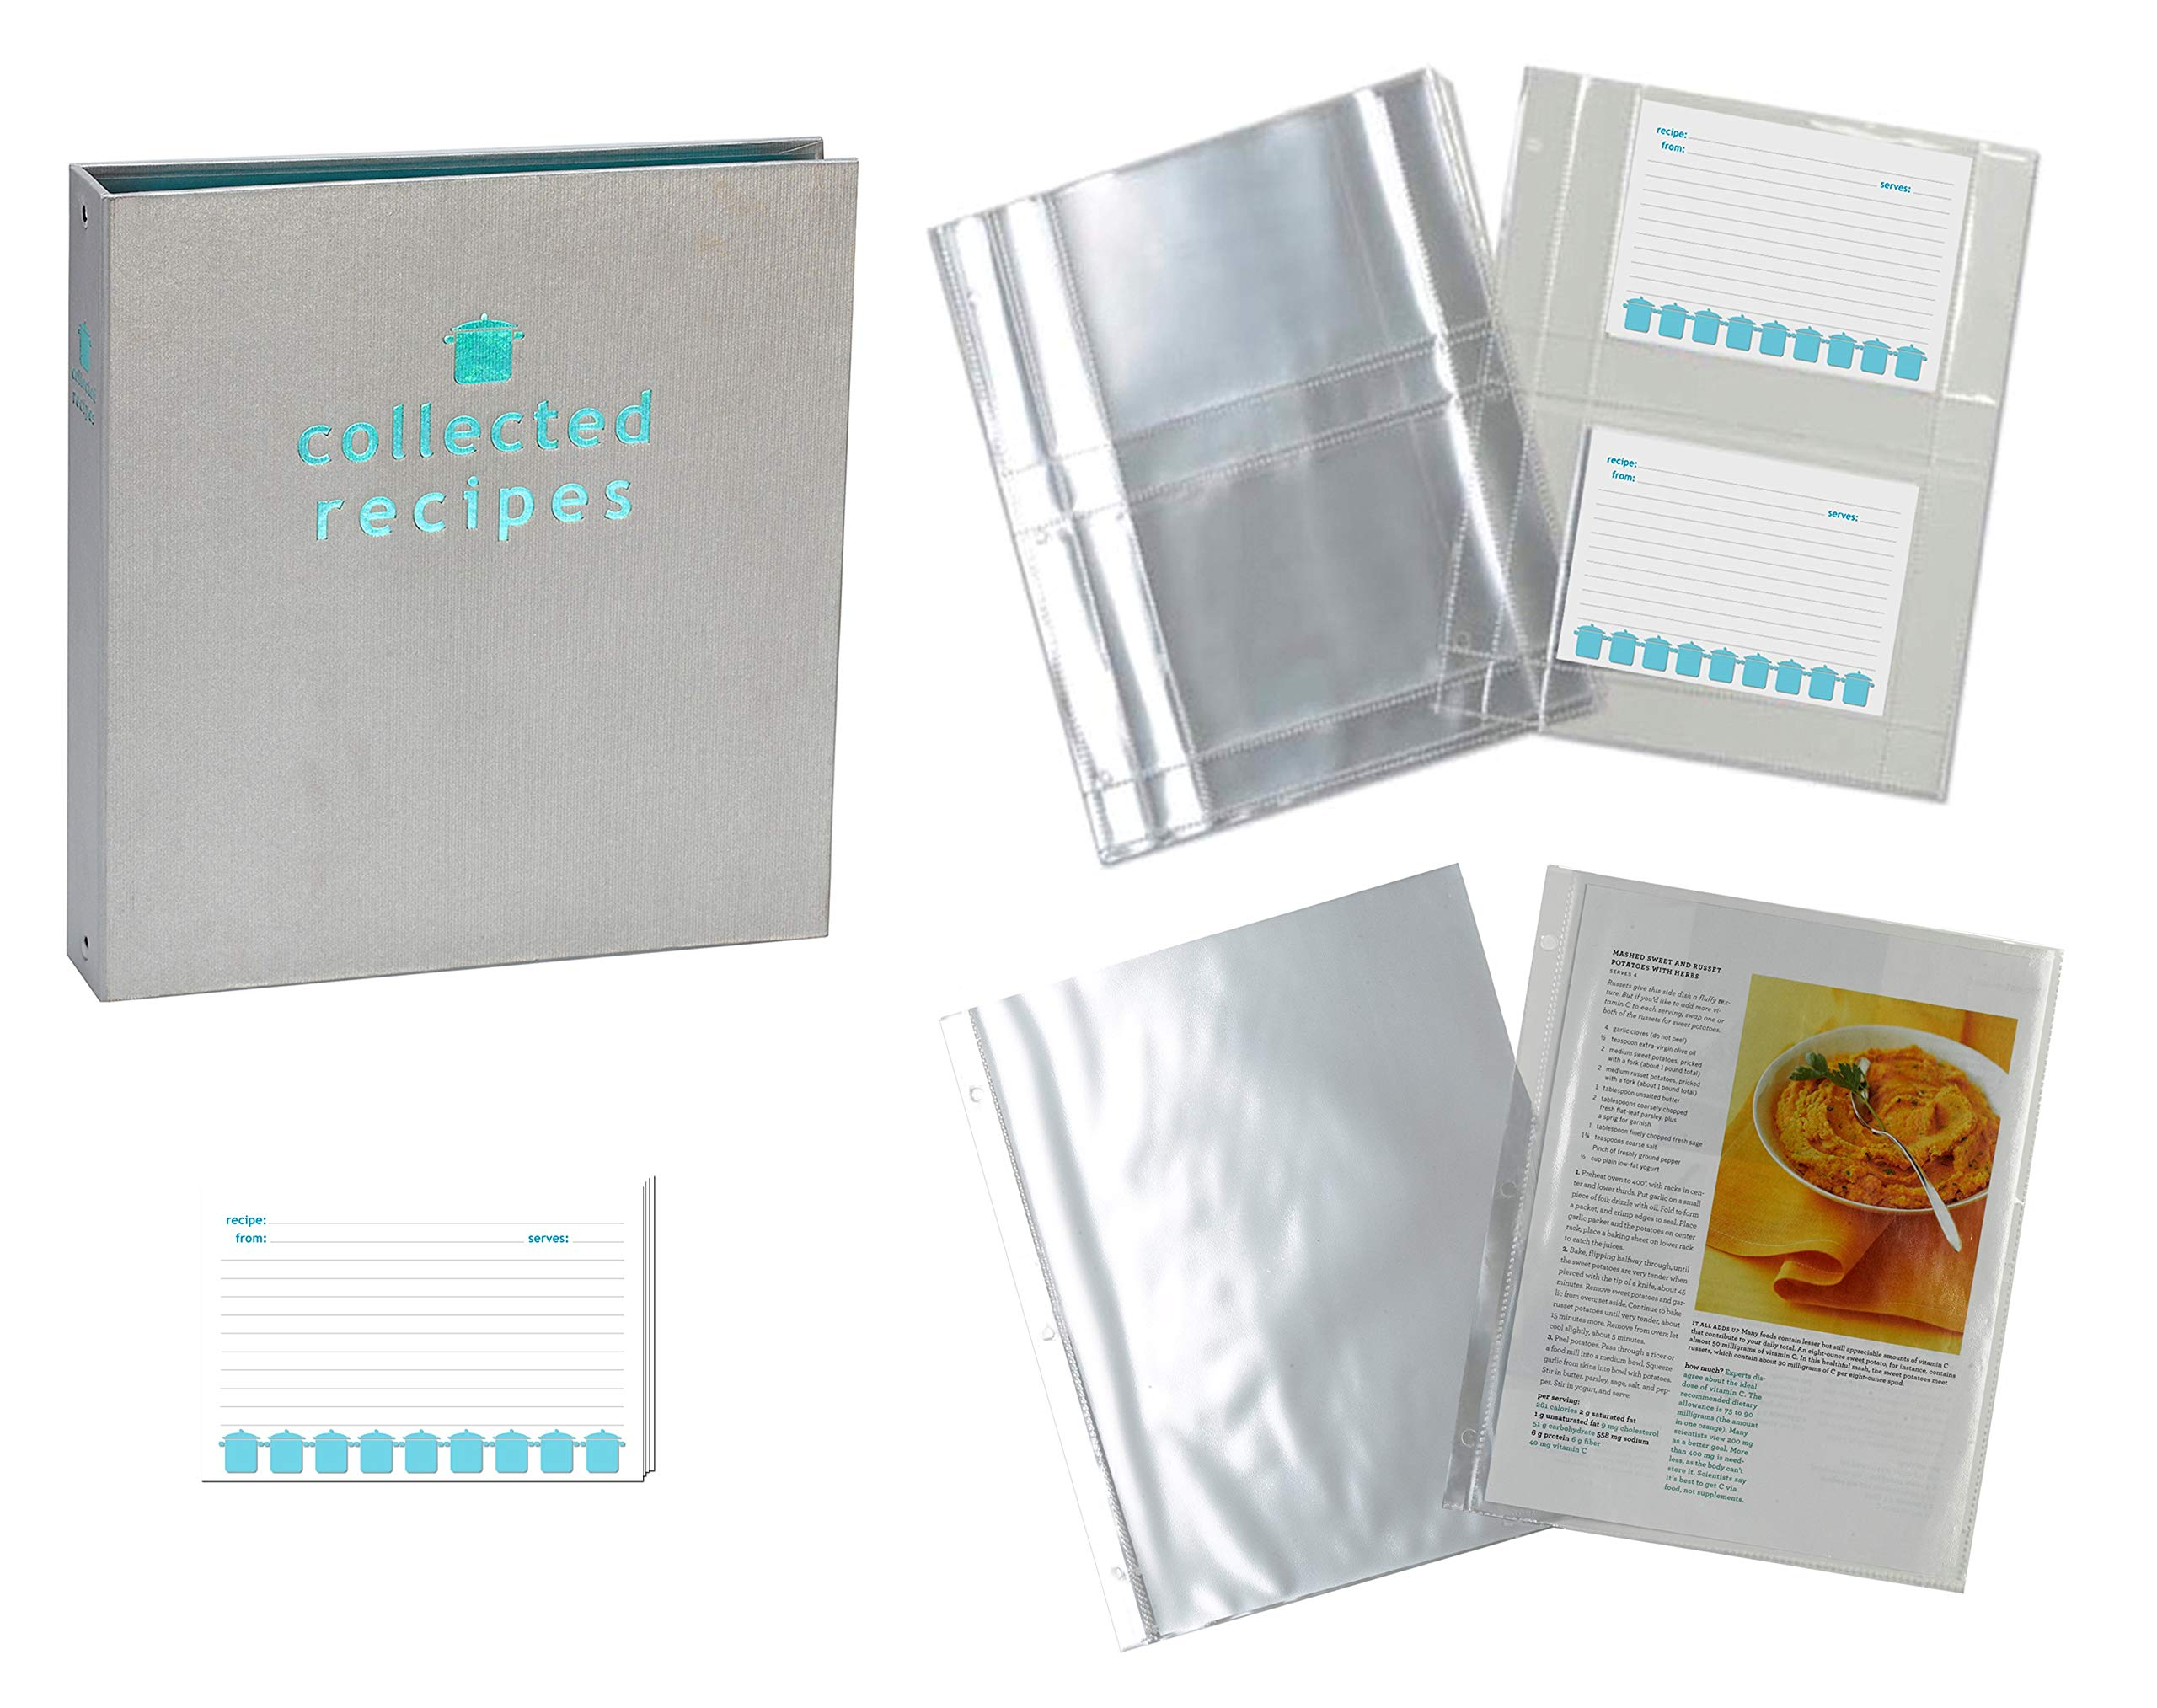 Meadowsweet Kitchens Recipe Binder Organizer Gift Set with Recipe Cards and Plastic Protector Sheets (Turquoise & Gray) by Meadowsweet Kitchens